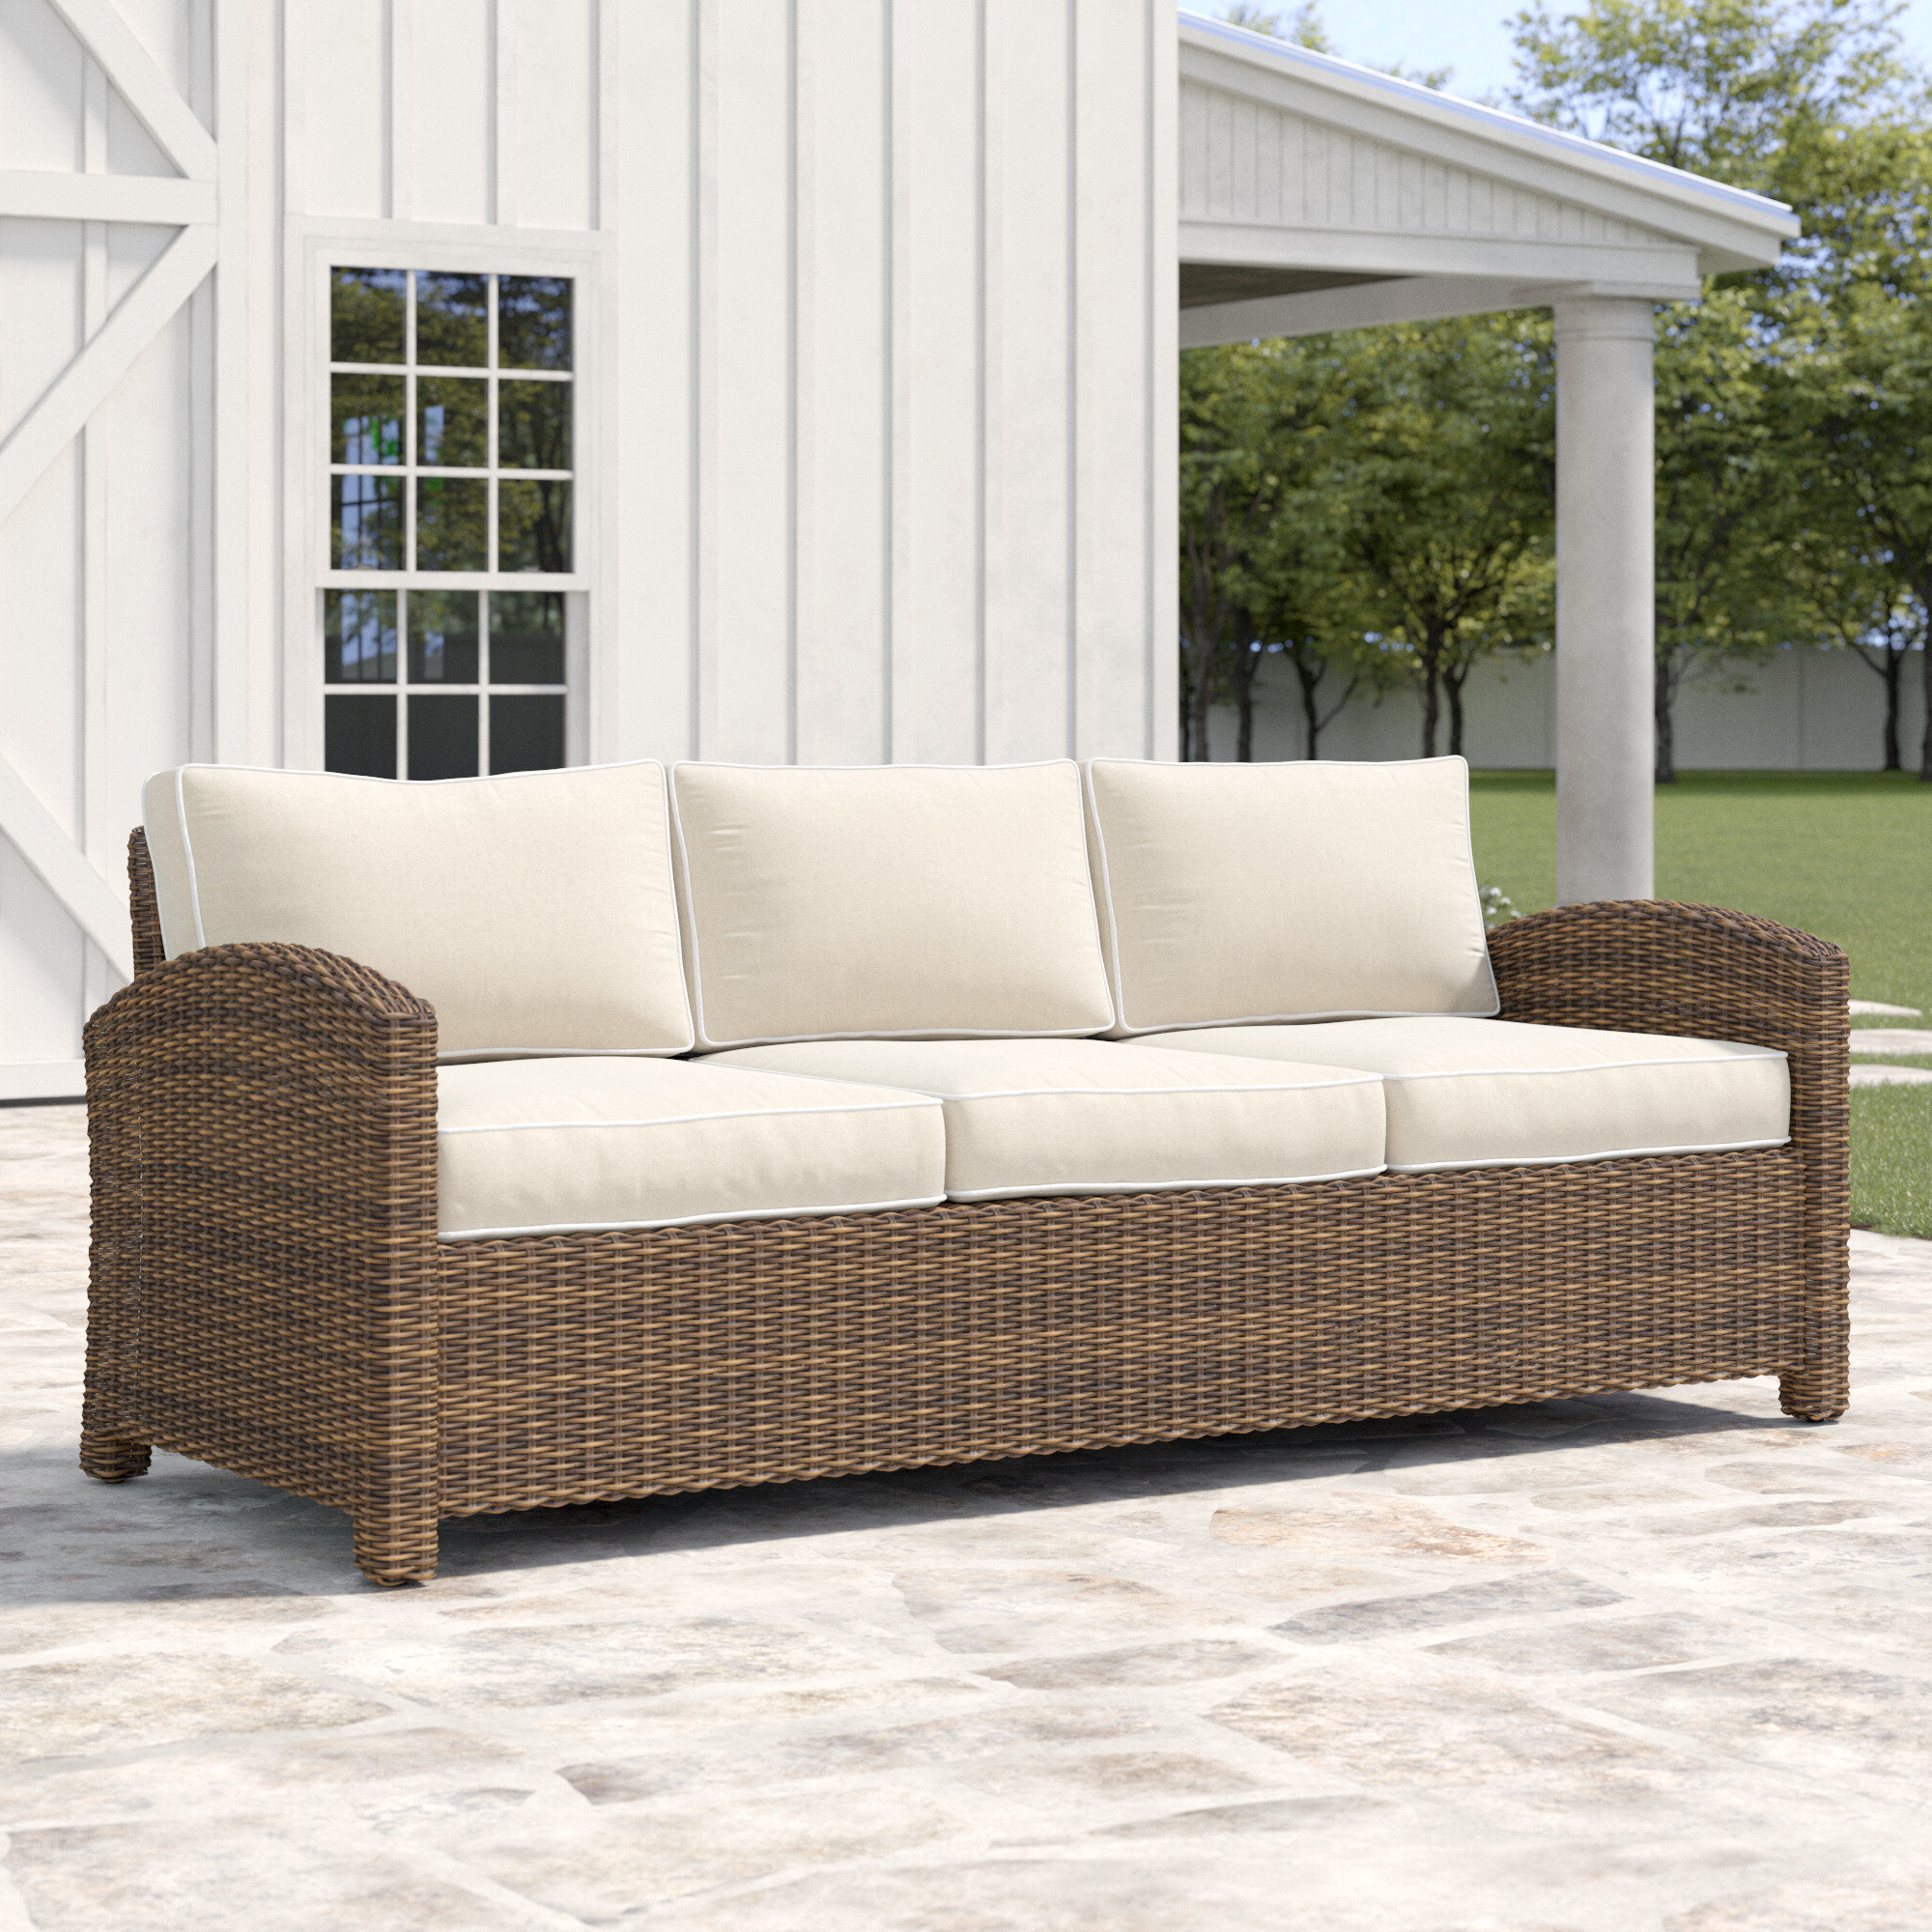 Popular 3 Seat Outdoor Sofa You'll Love In 2019 (Gallery 6 of 25)